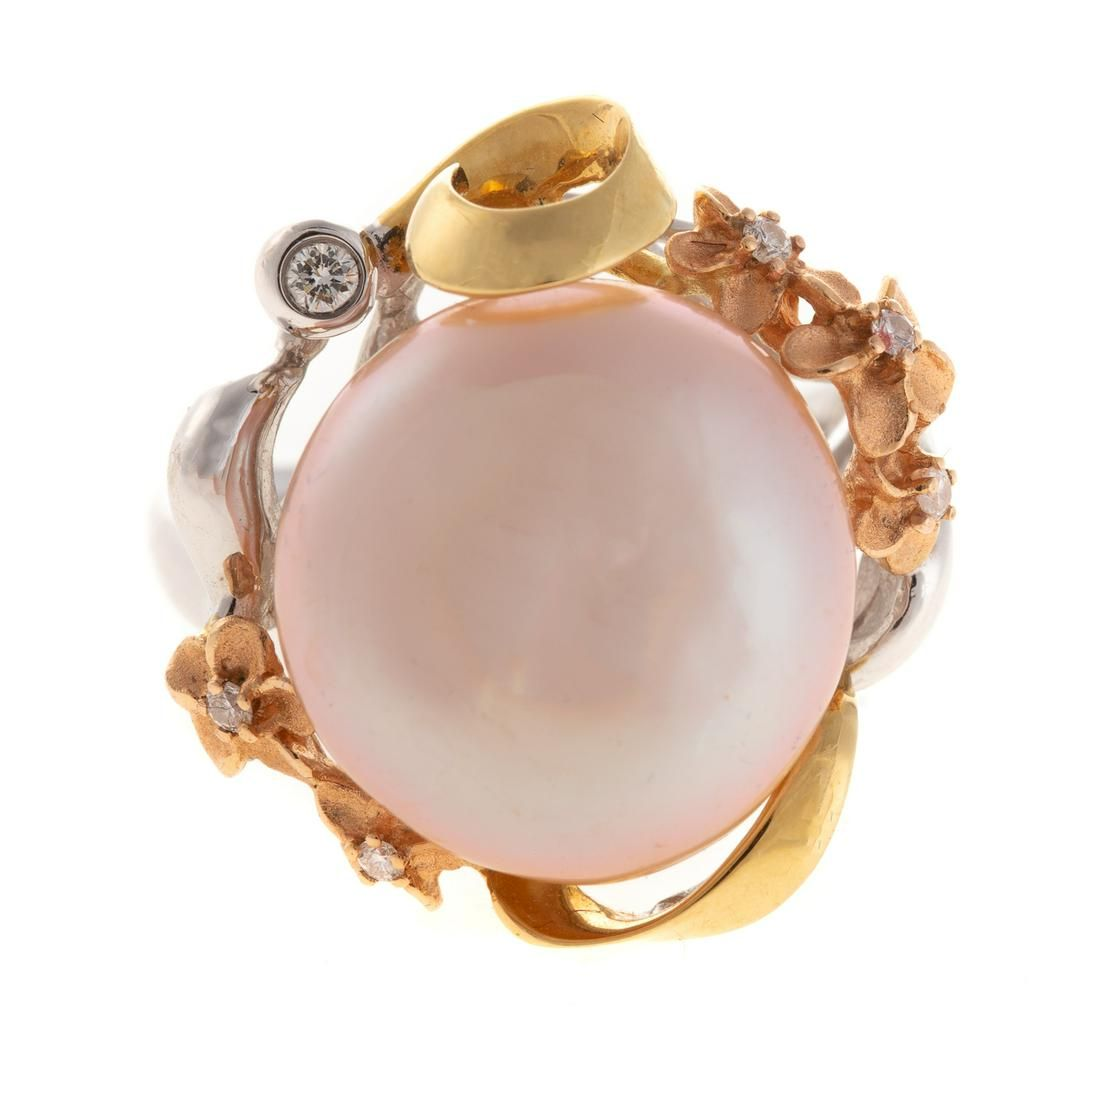 A Ladies Pearl Ring by Denny Wong in 18K Gold